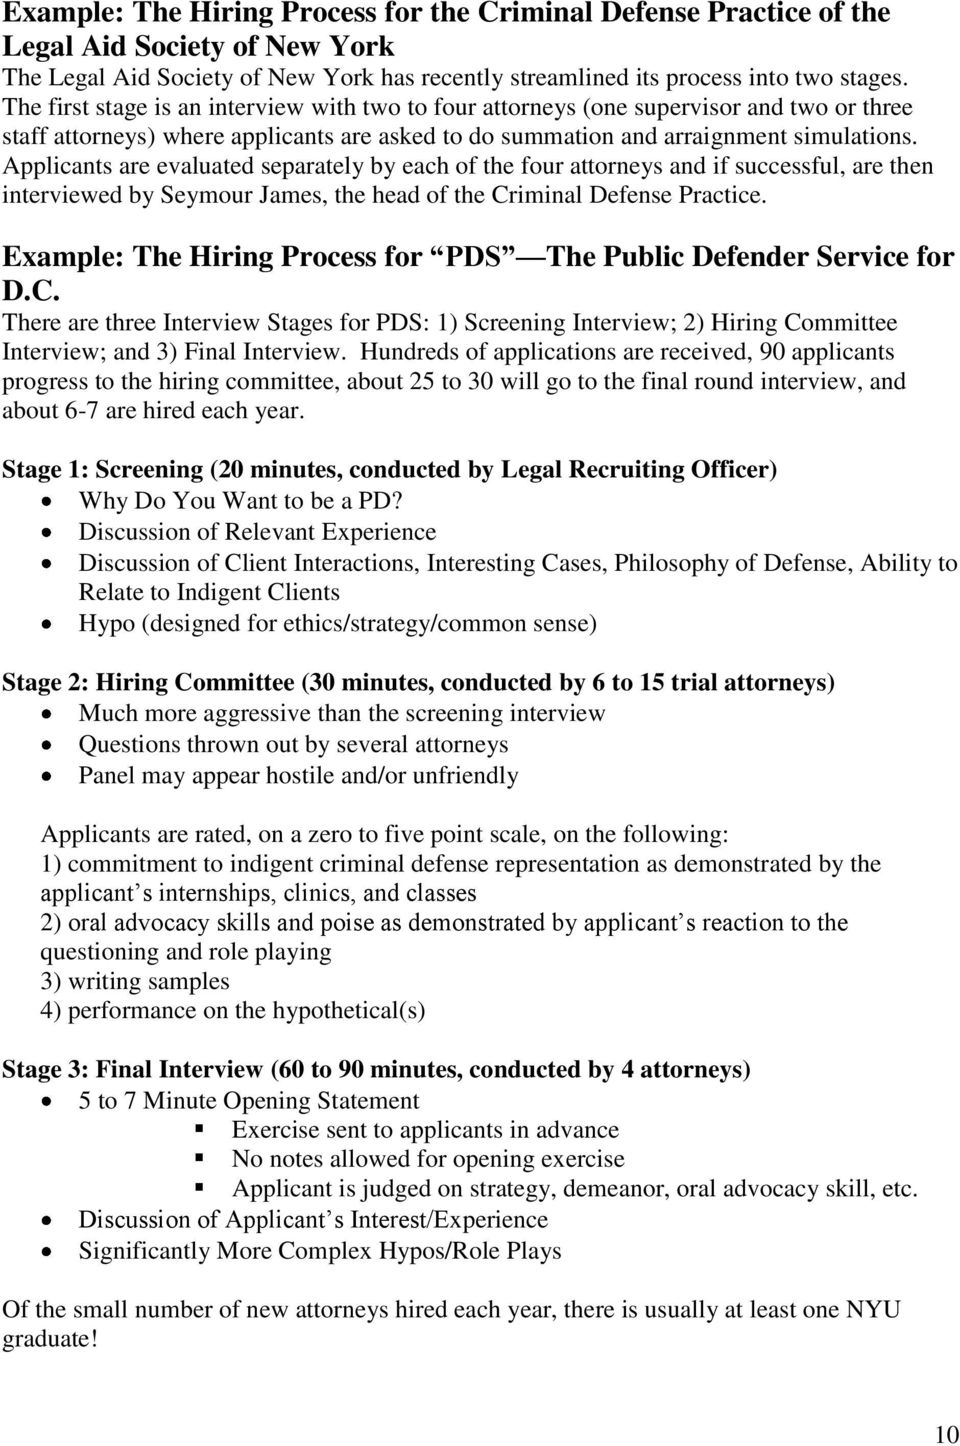 public defender handbook pdf applicants are evaluated separately by each of the four attorneys and if successful are then